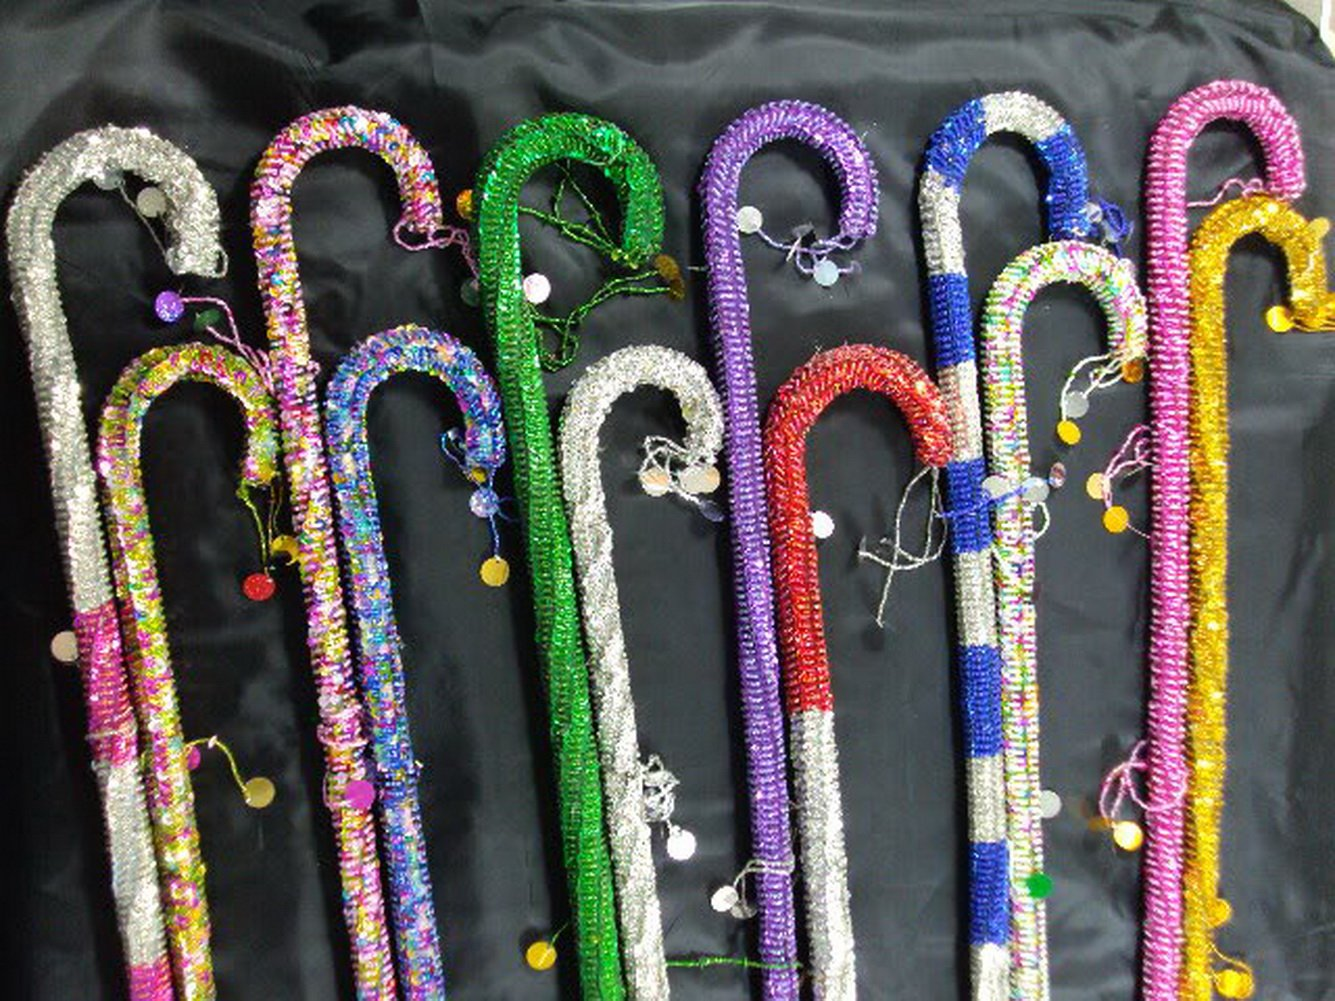 Wholesale 15 Pcs Belly Dance Canes Sticks Egyptian Decorated Sequins Beads Handmade by bonballoon